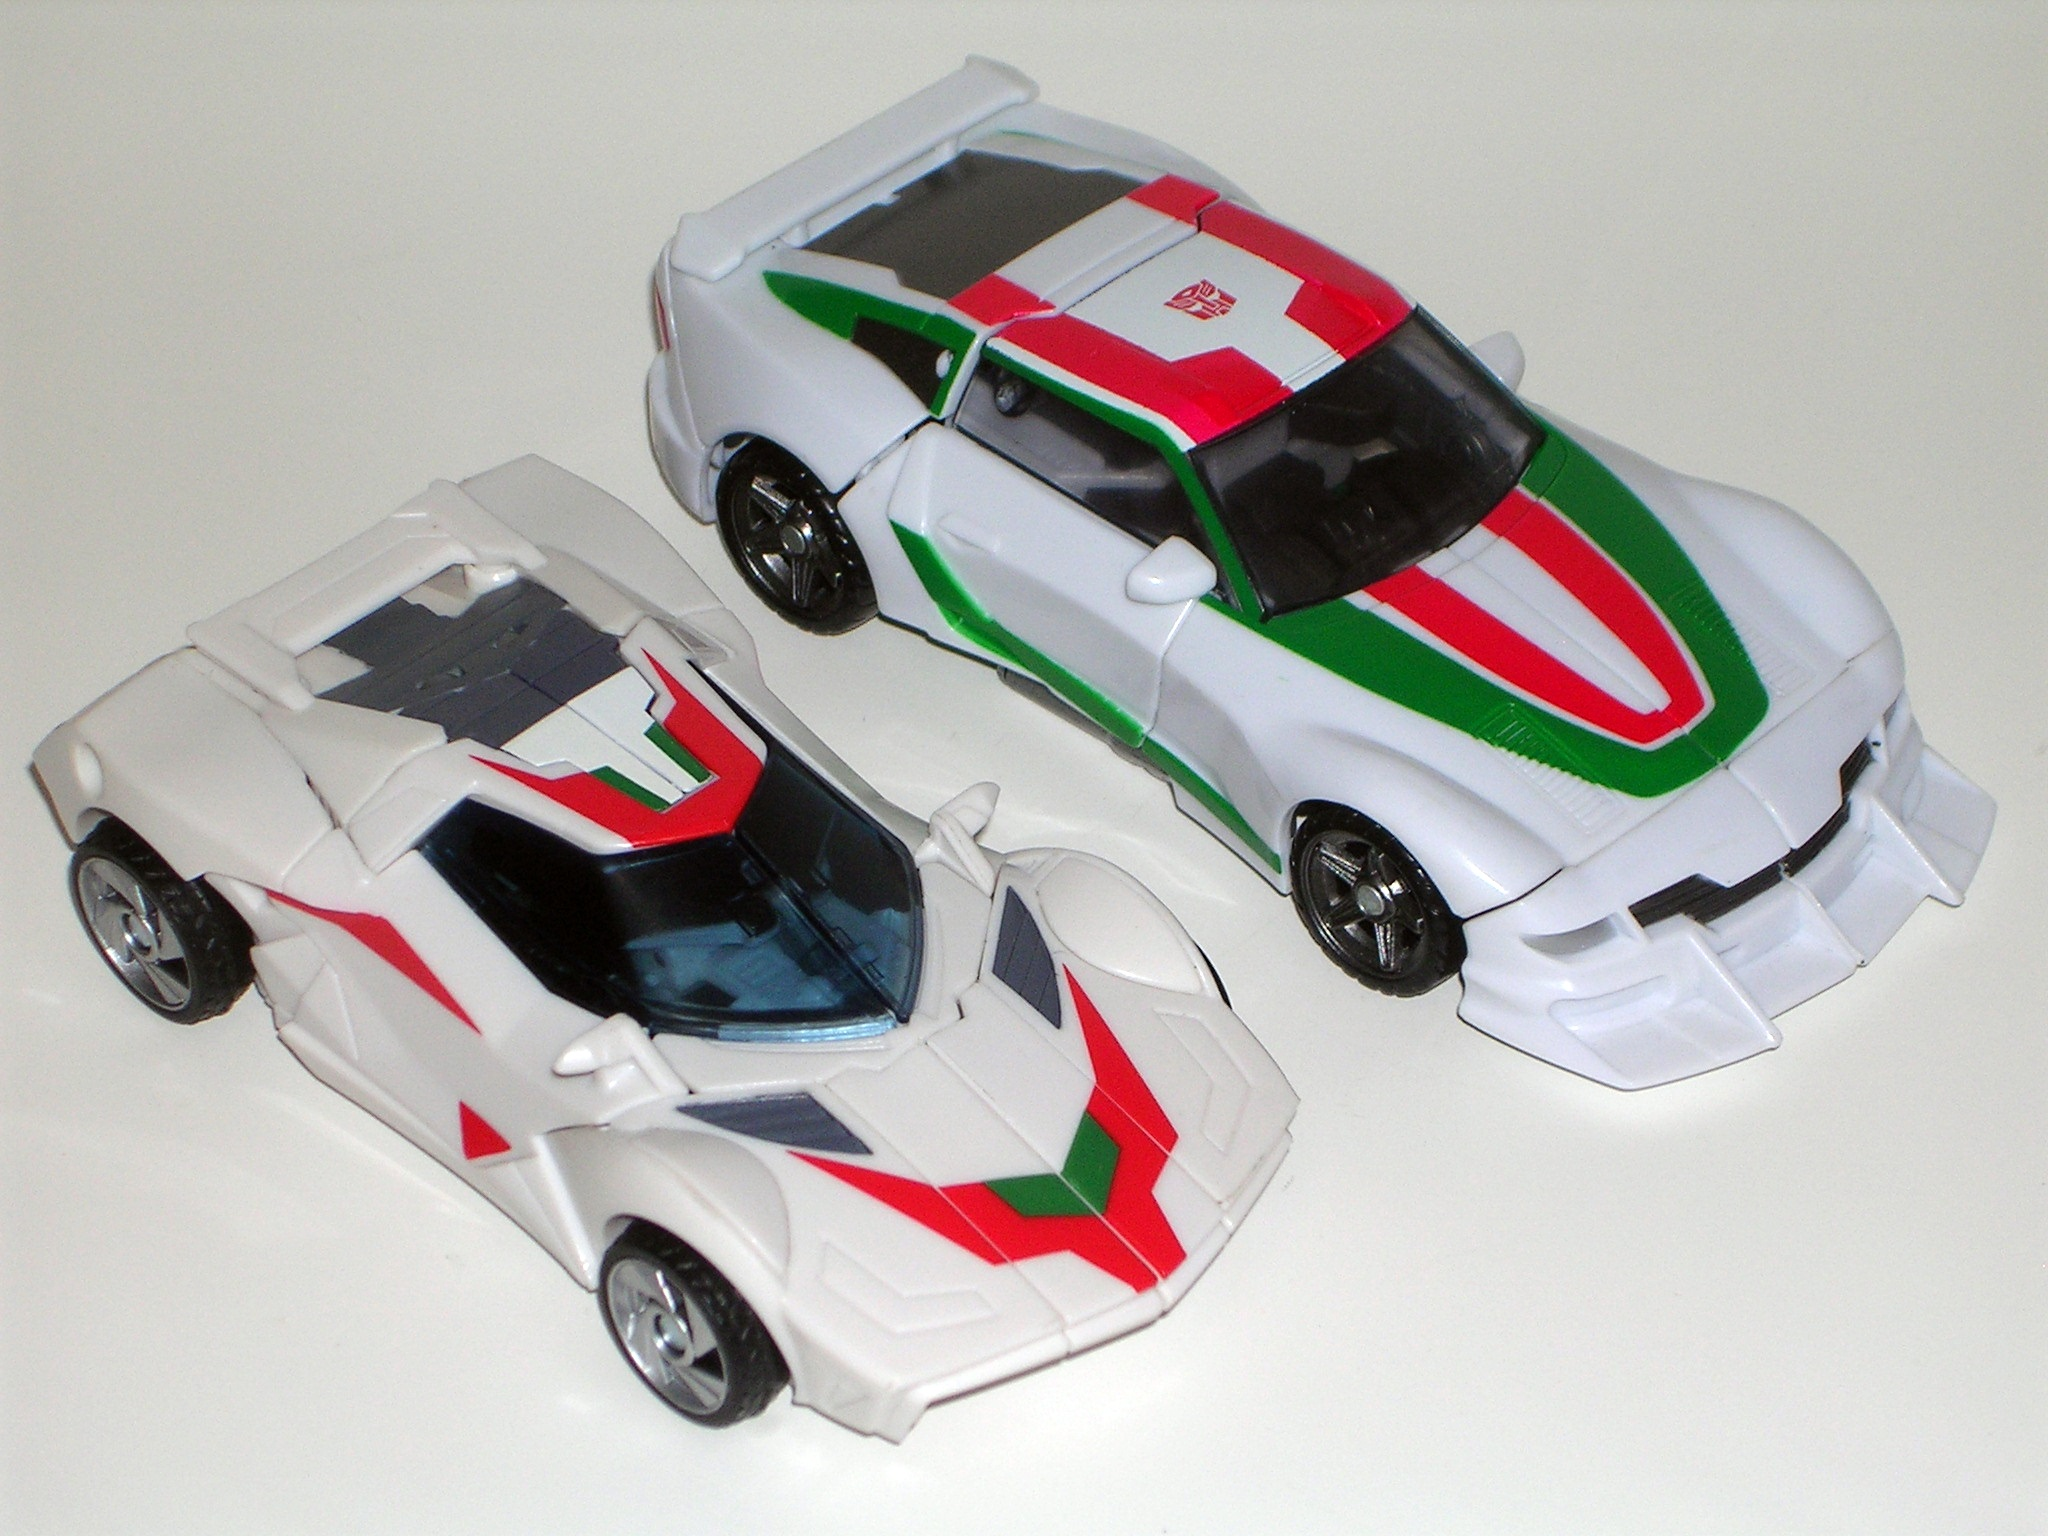 Transformers prime wheeljack car - photo#27